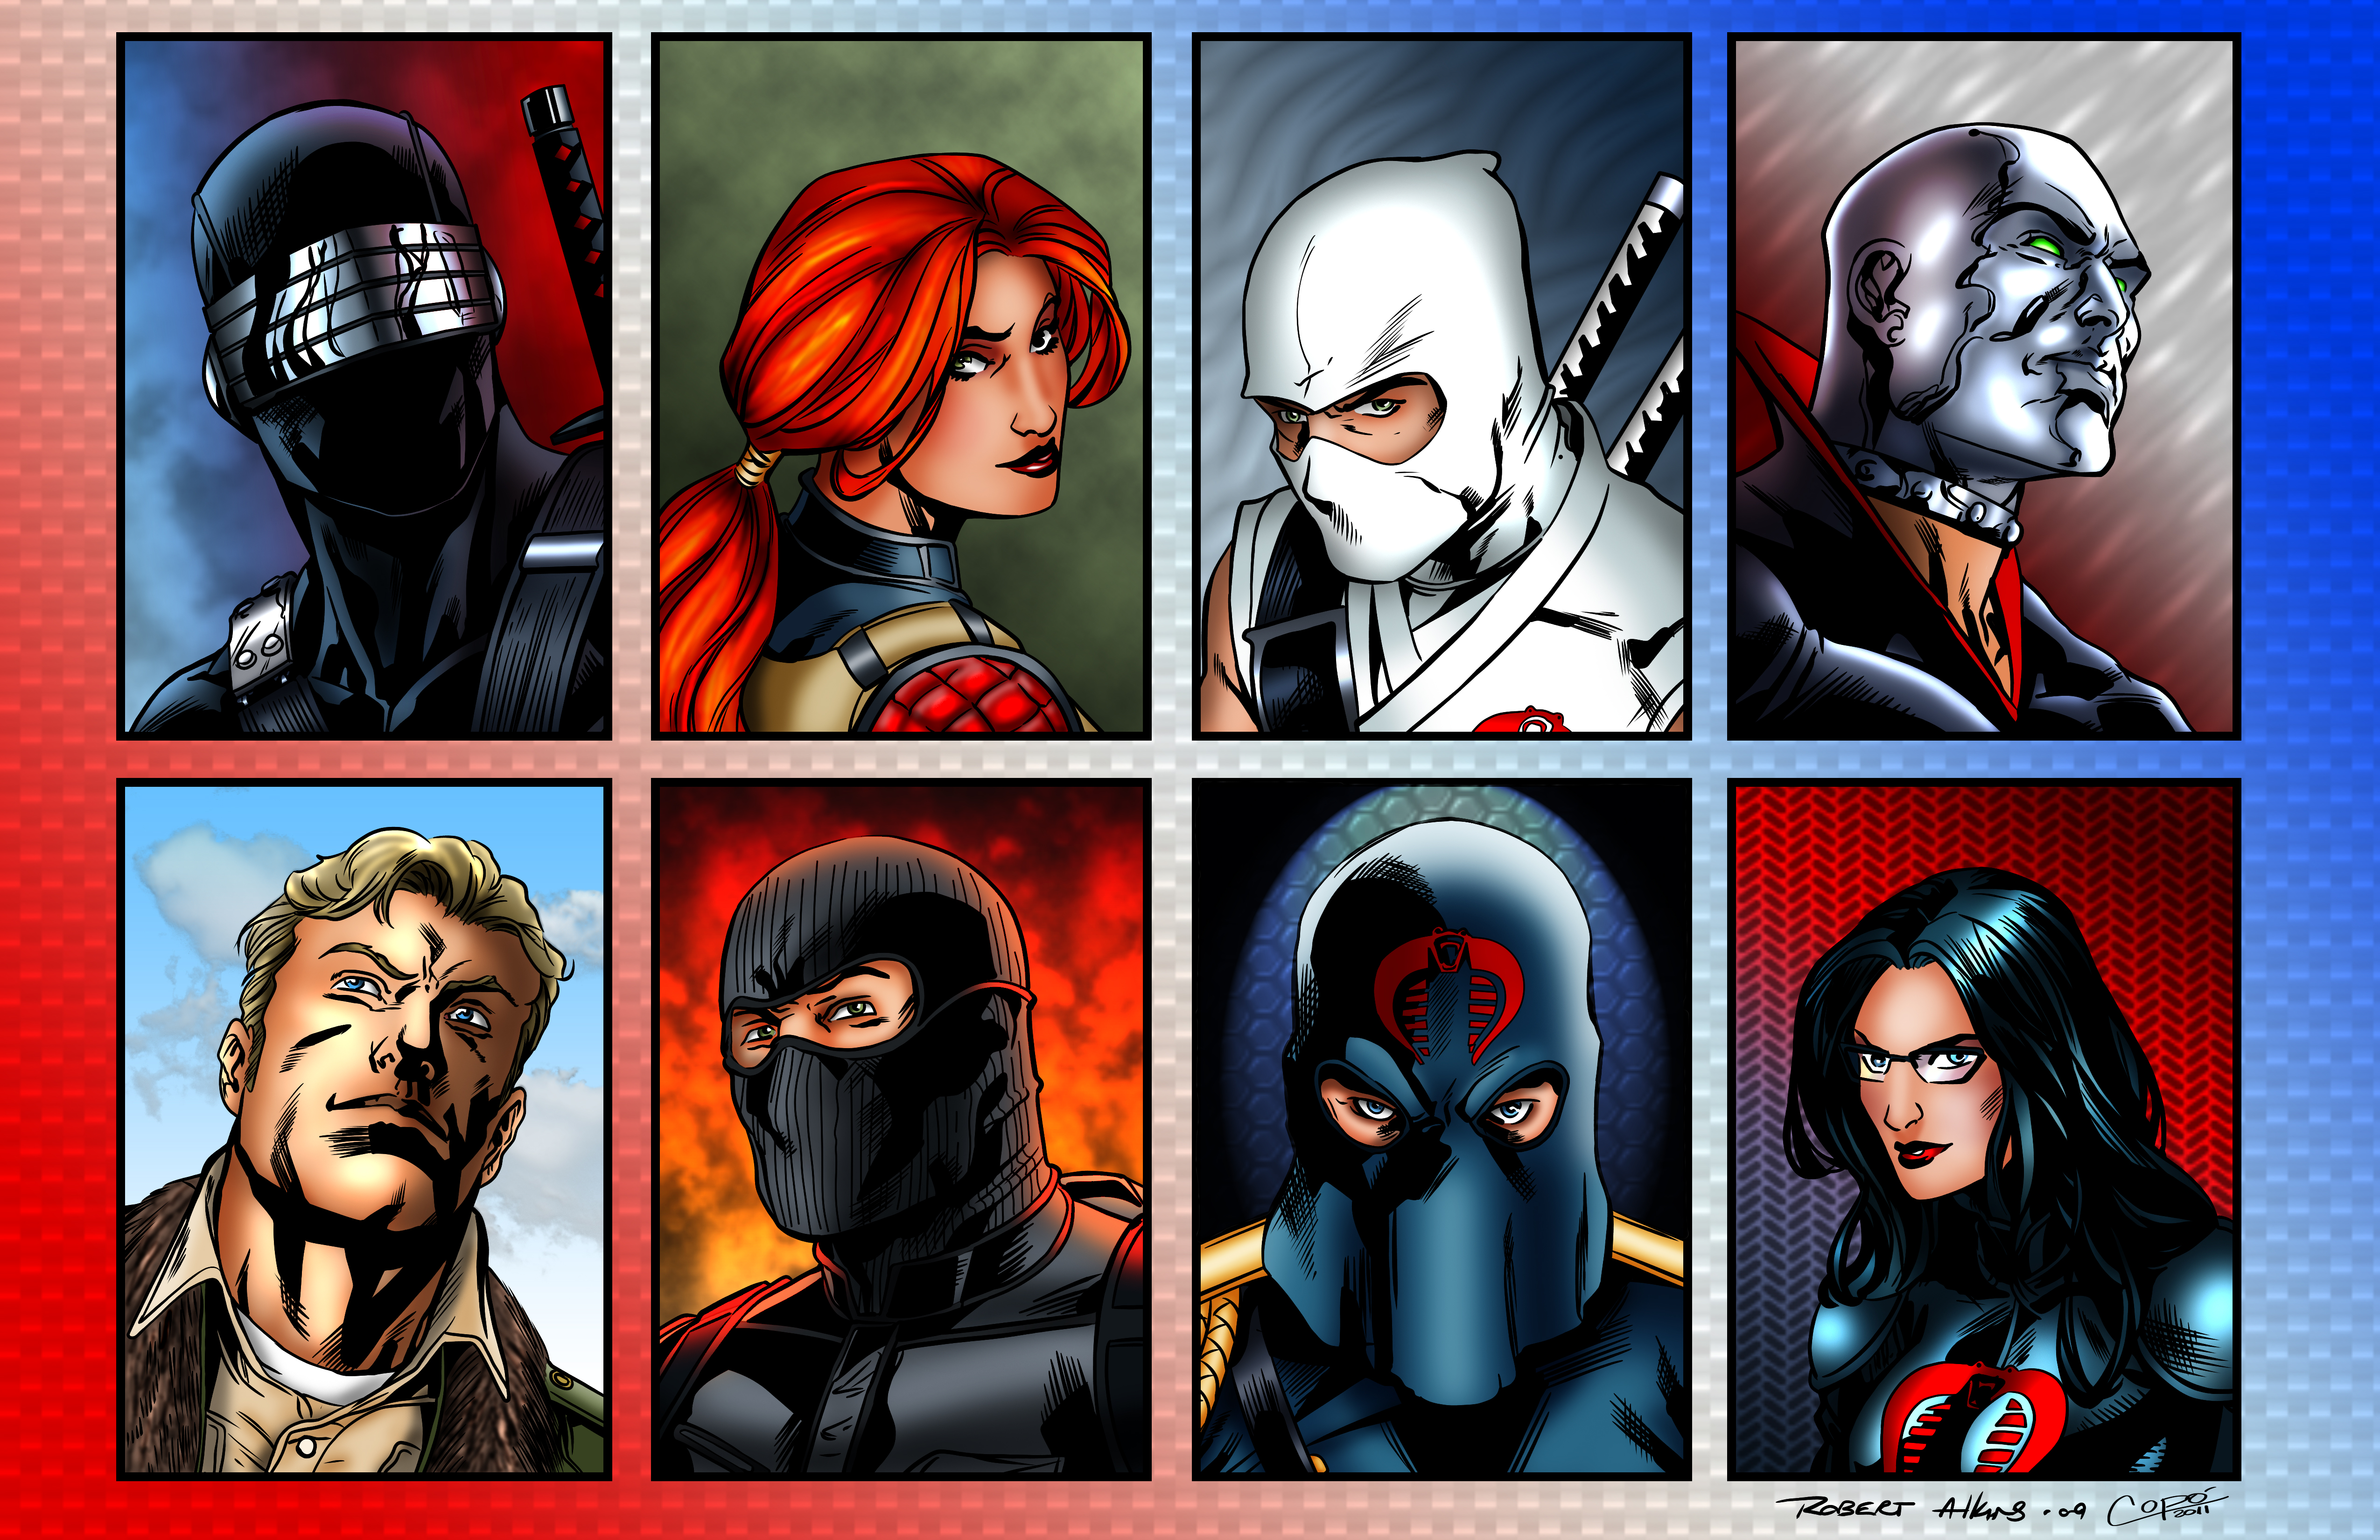 G.I. Joe cards colored by Balsavor